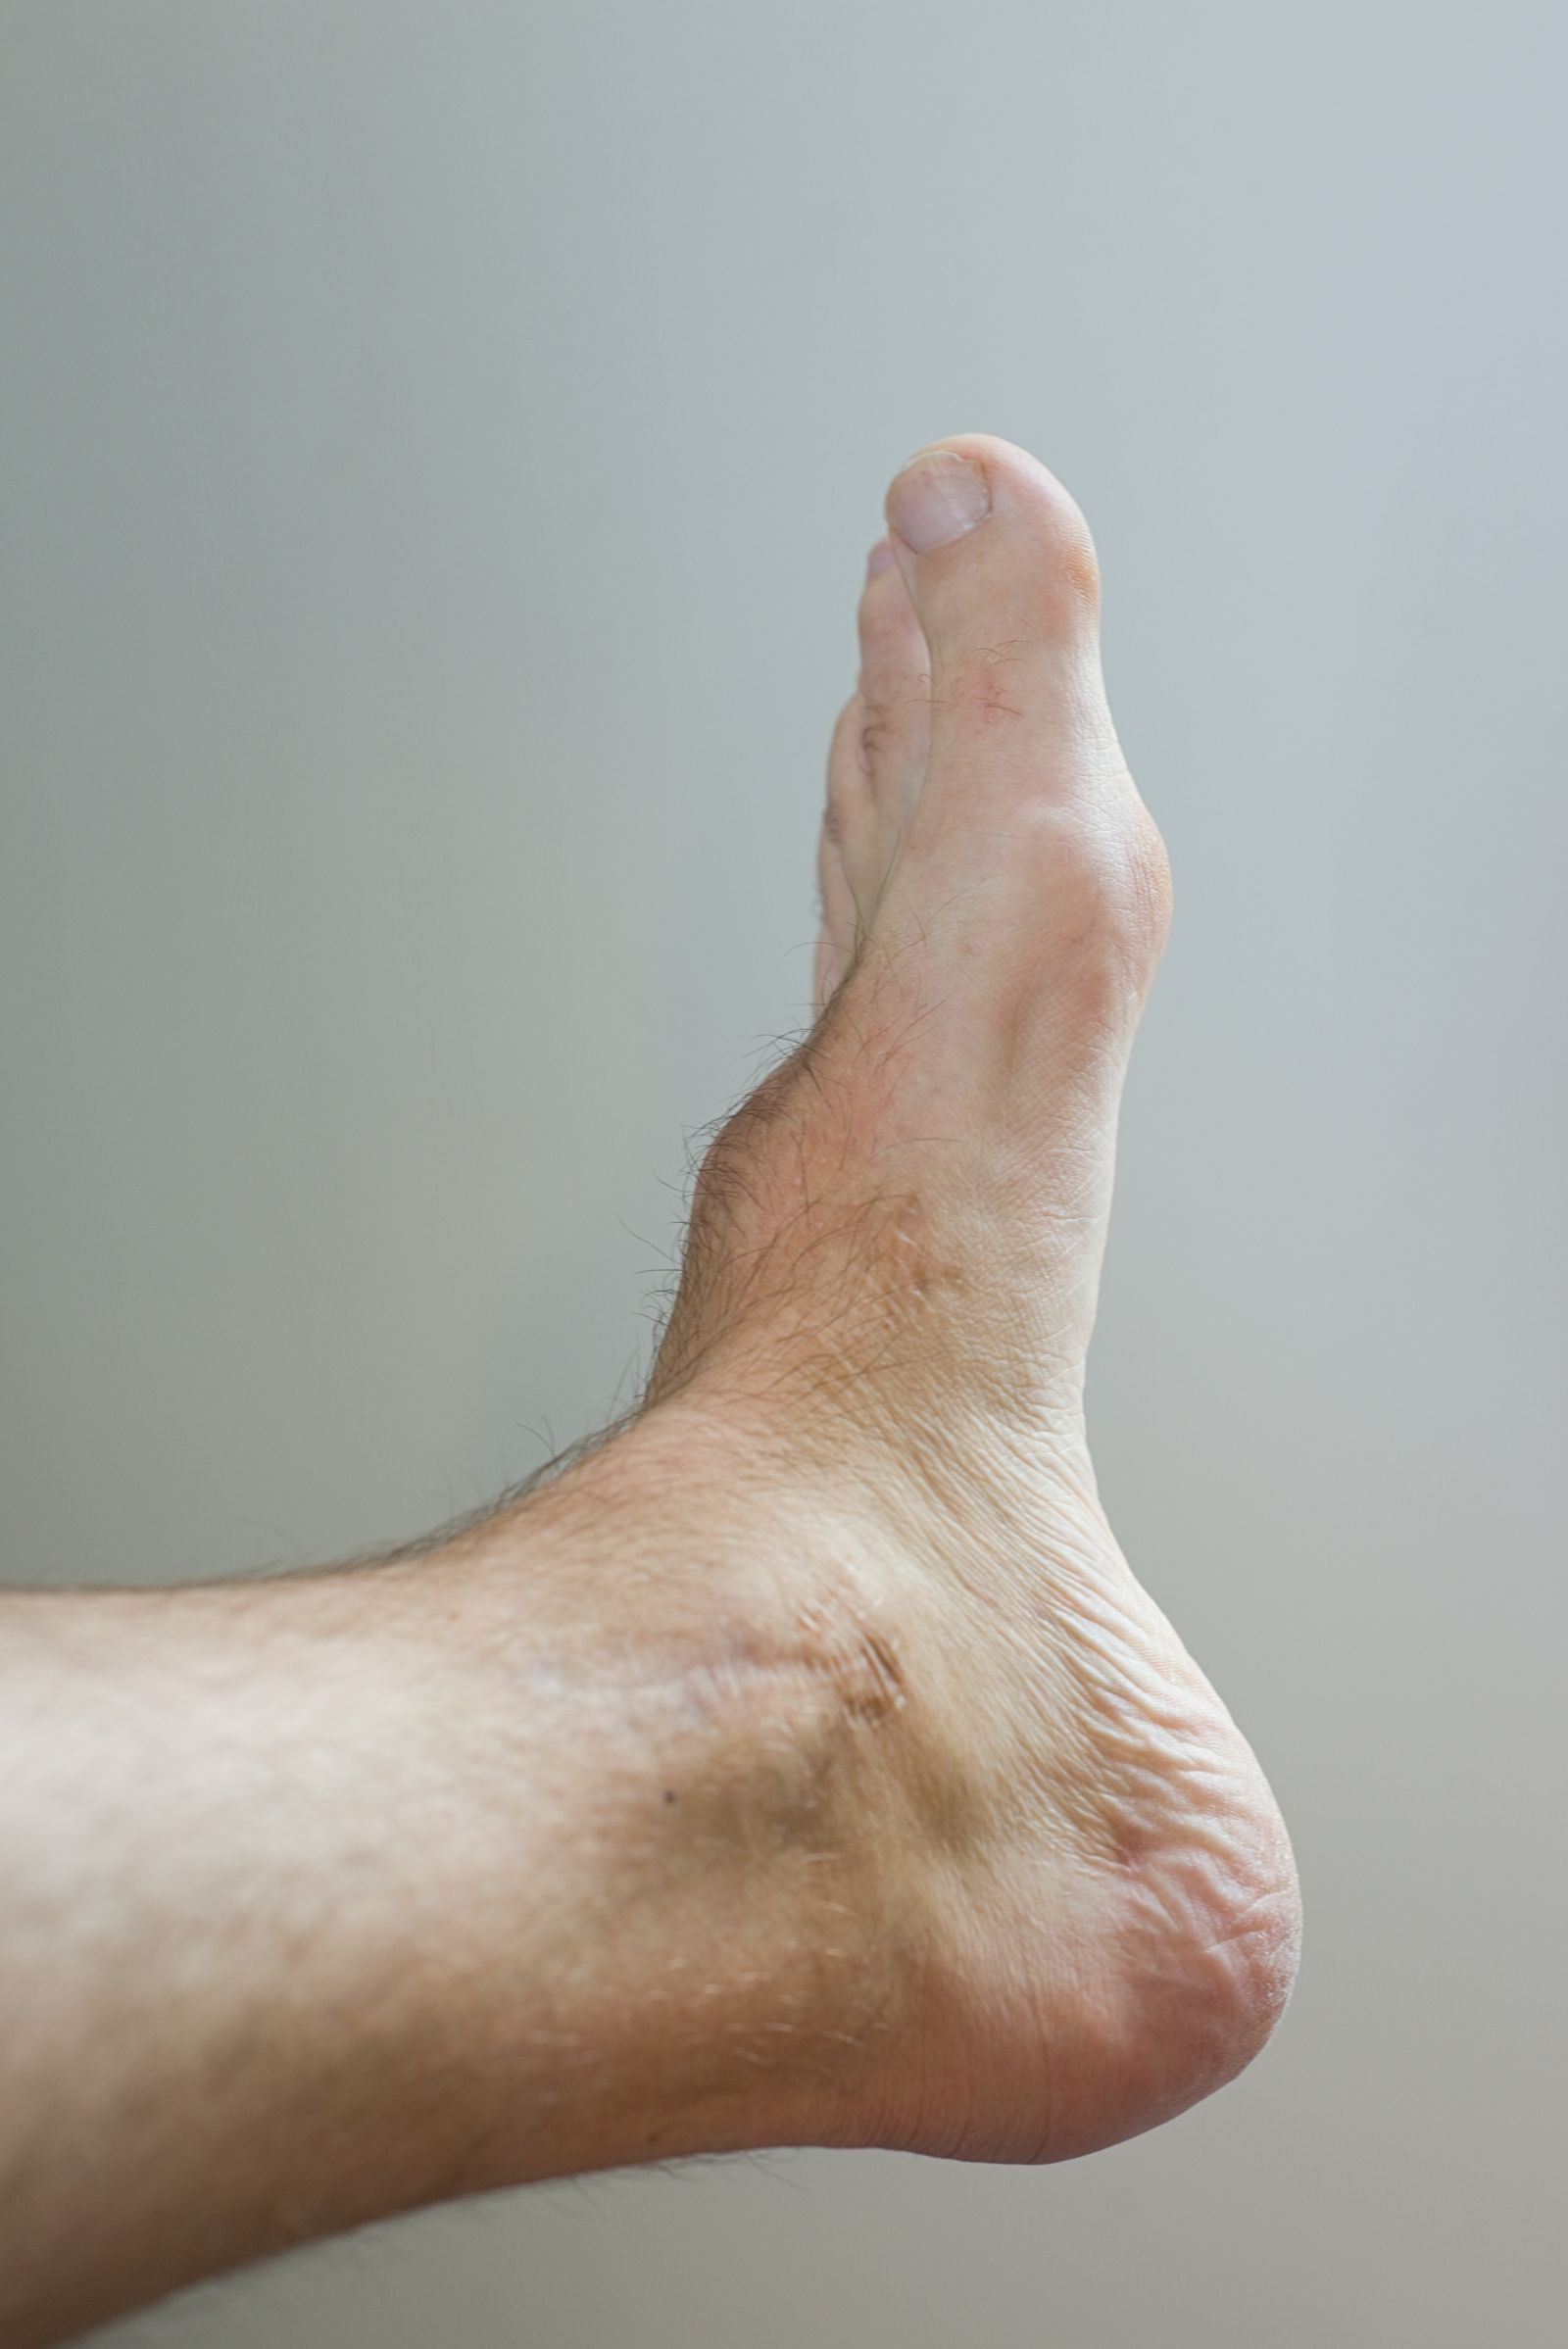 Houston podiatrist discusses bump on the top of your foot caused by bone spurs and ganglion cyst